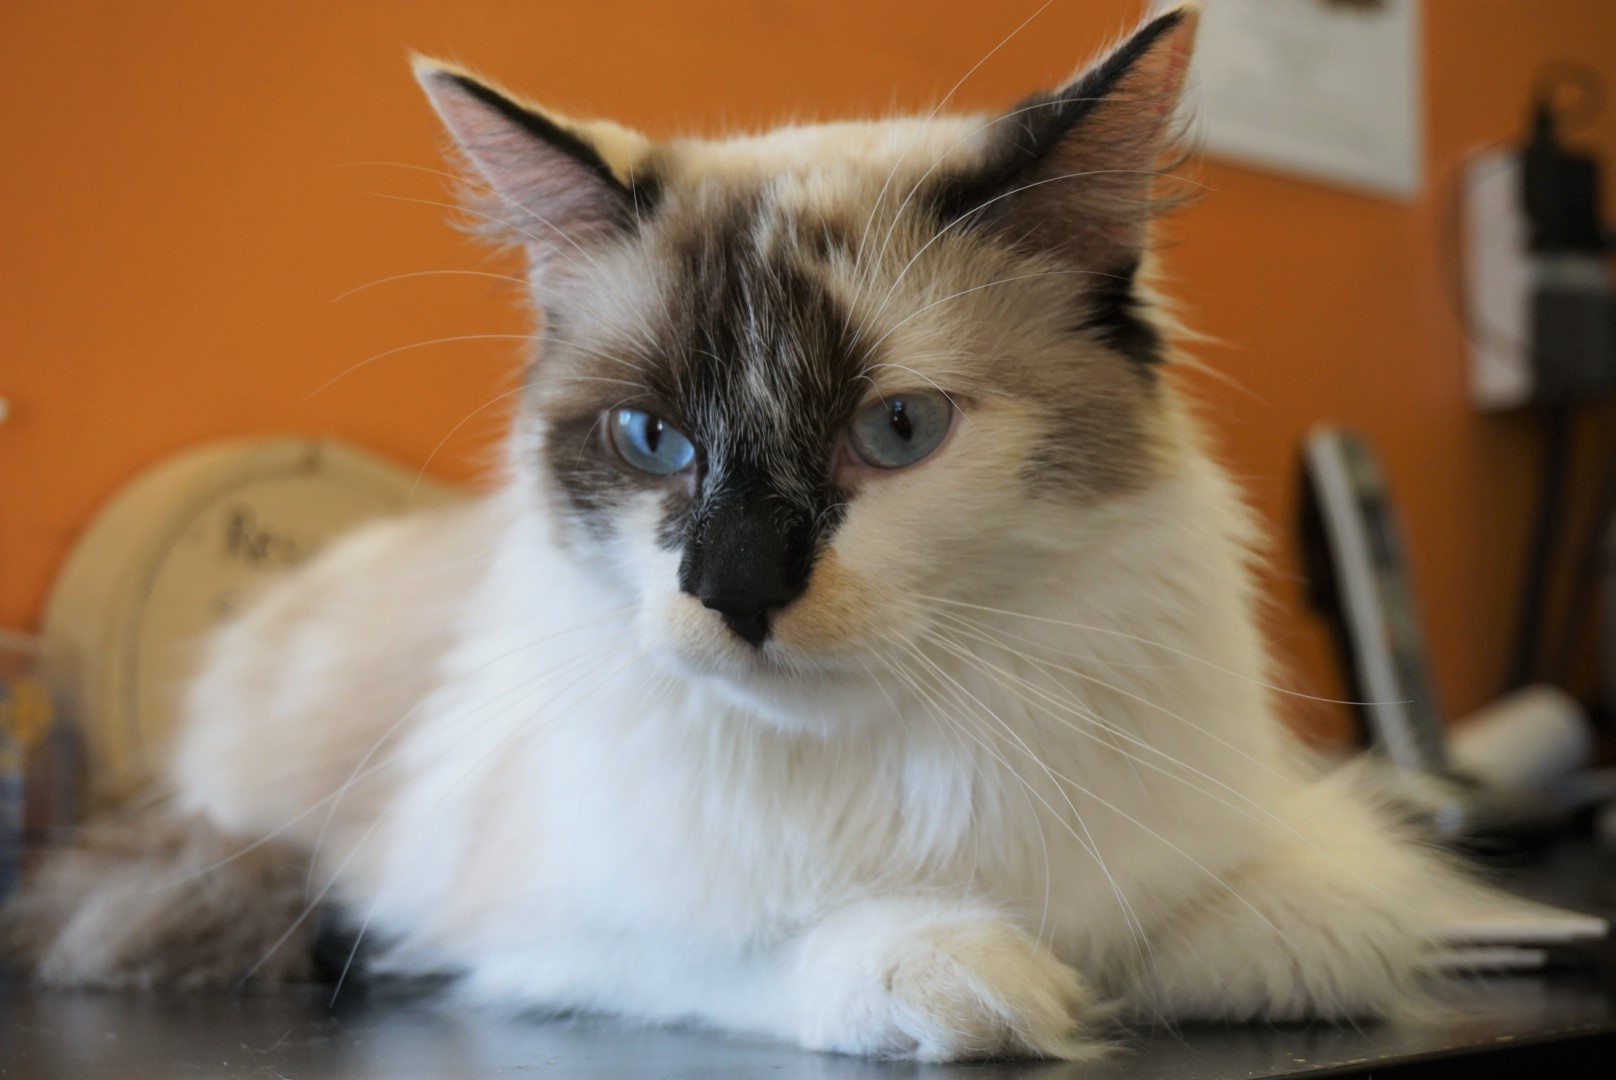 Siamese Cross Tortoise shell - Seal Point (Long Hair) Female - Spayed Date of birth: May 2017 Juniper is a feisty gal with tons of love to give! While Juniper is young and playful, she also loves to sit on laps and purr up a storm! Juniper has a confident personality and would do well in a home with other cats, or as a single pet. If you would like to meet this great girl, you can visit Juniper at the Rescue Siamese adoption centre at 38 Barberry Road, during regular store hours.